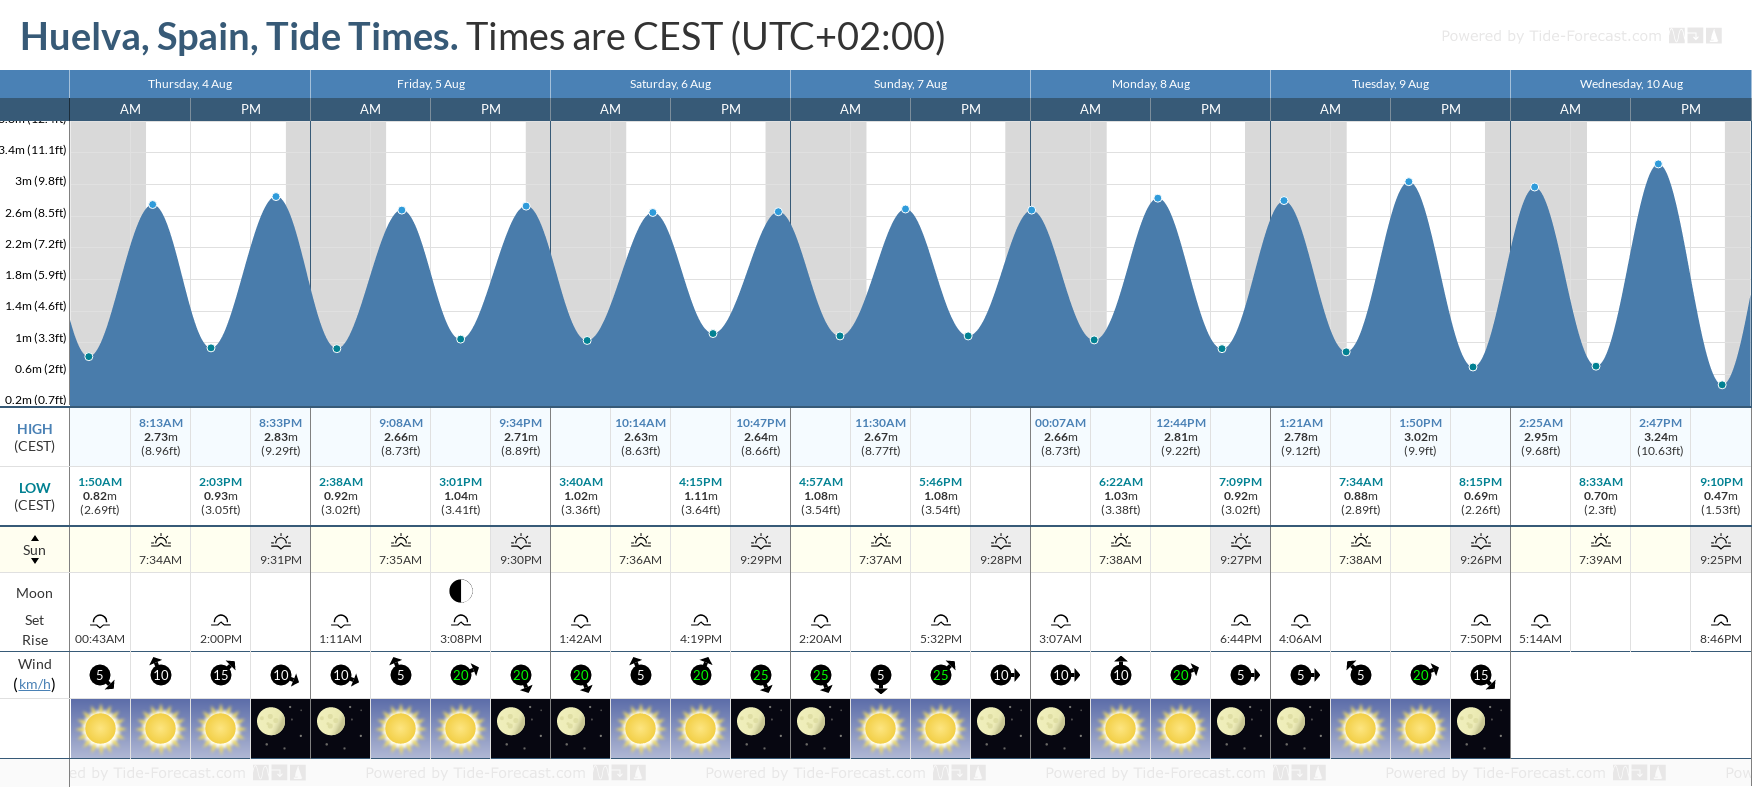 Huelva, Spain Tide Chart including high and low tide tide times for the next 7 days